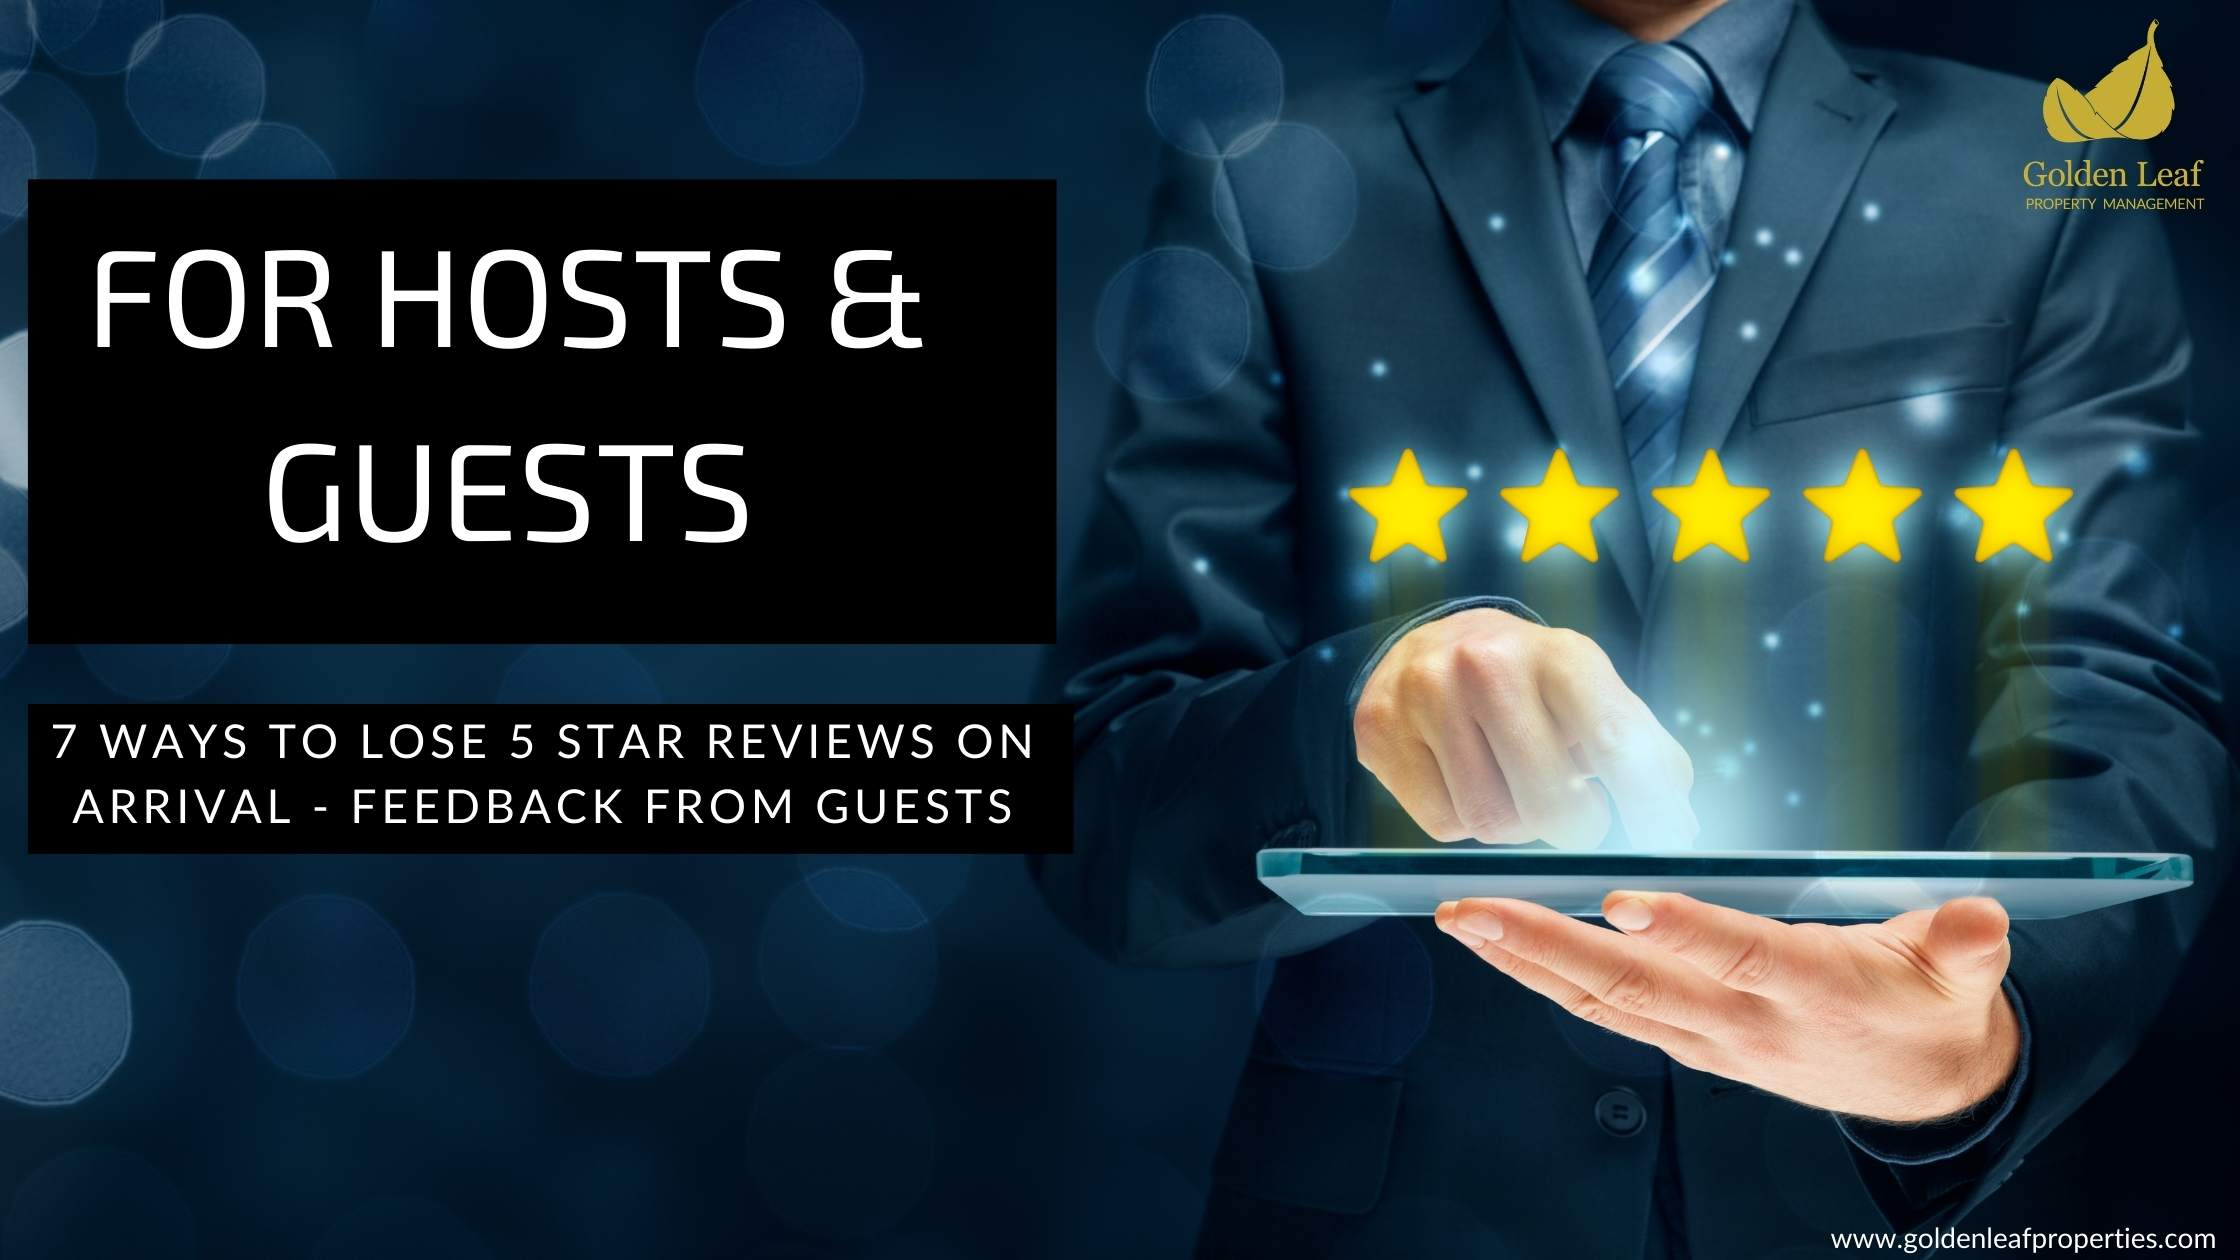 7 Ways To Lose 5 Star Reviews On Arrival